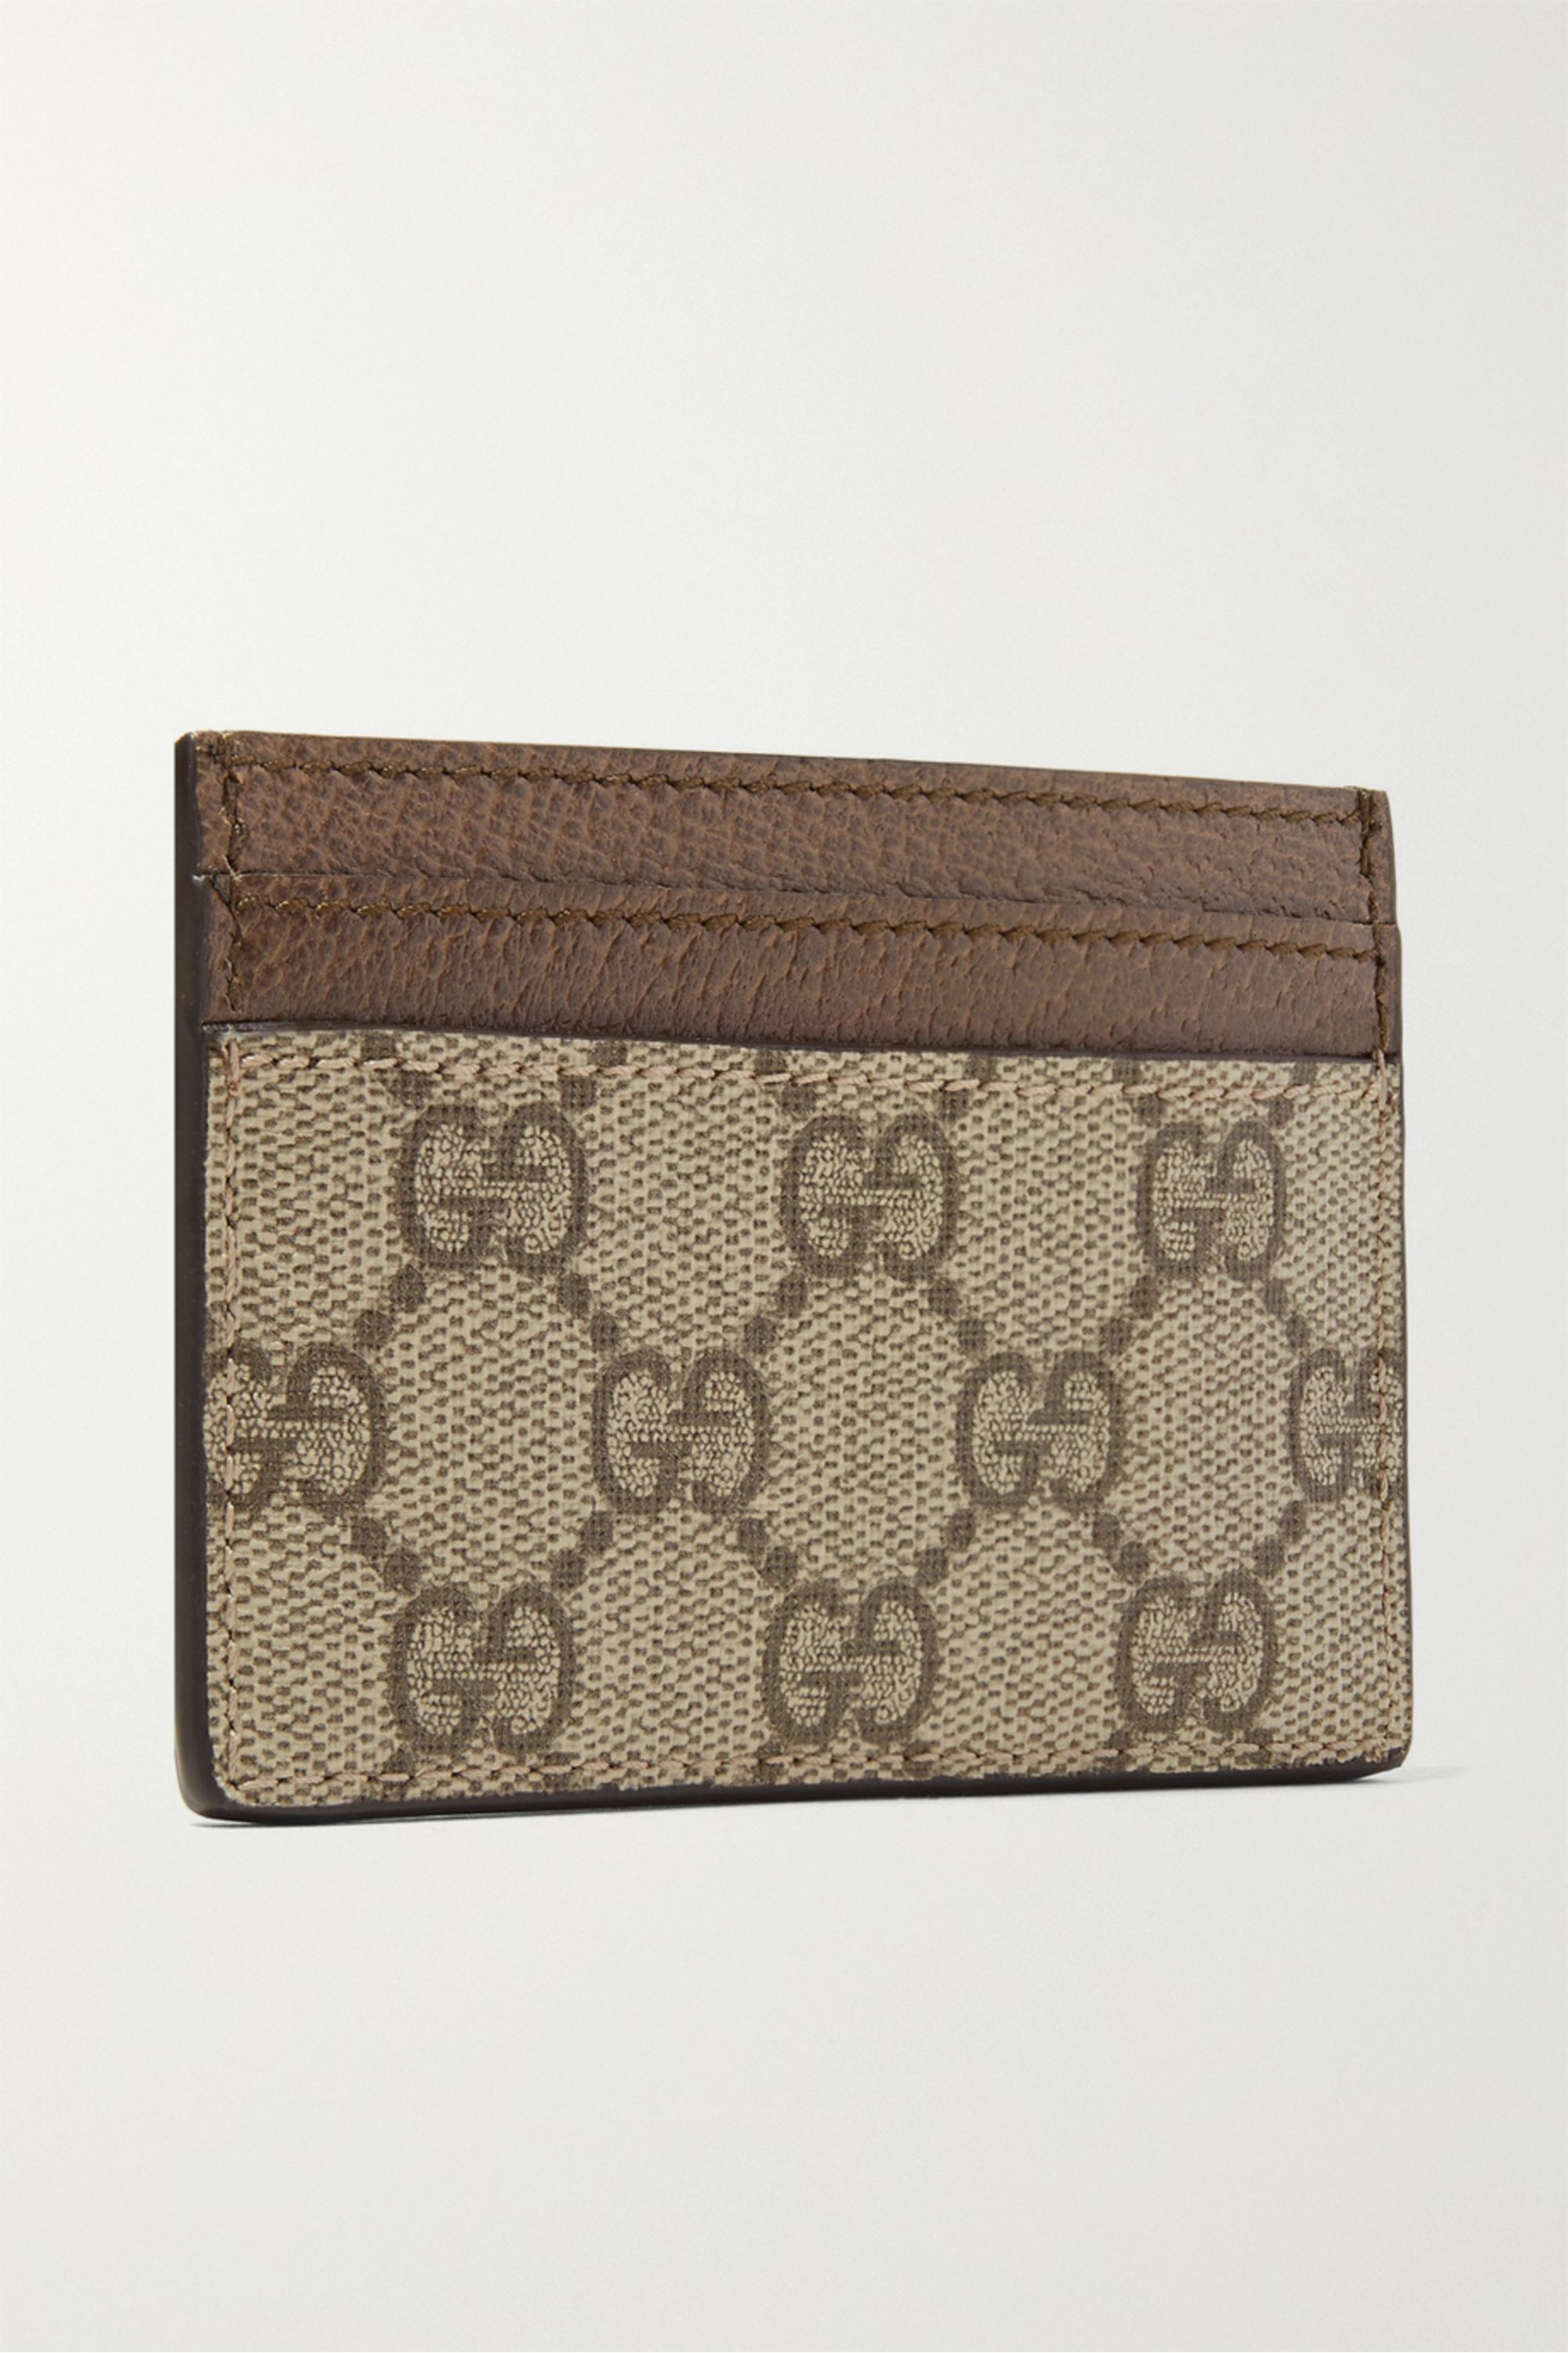 Gucci Ophidia textured leather-trimmed printed coated-canvas cardholder